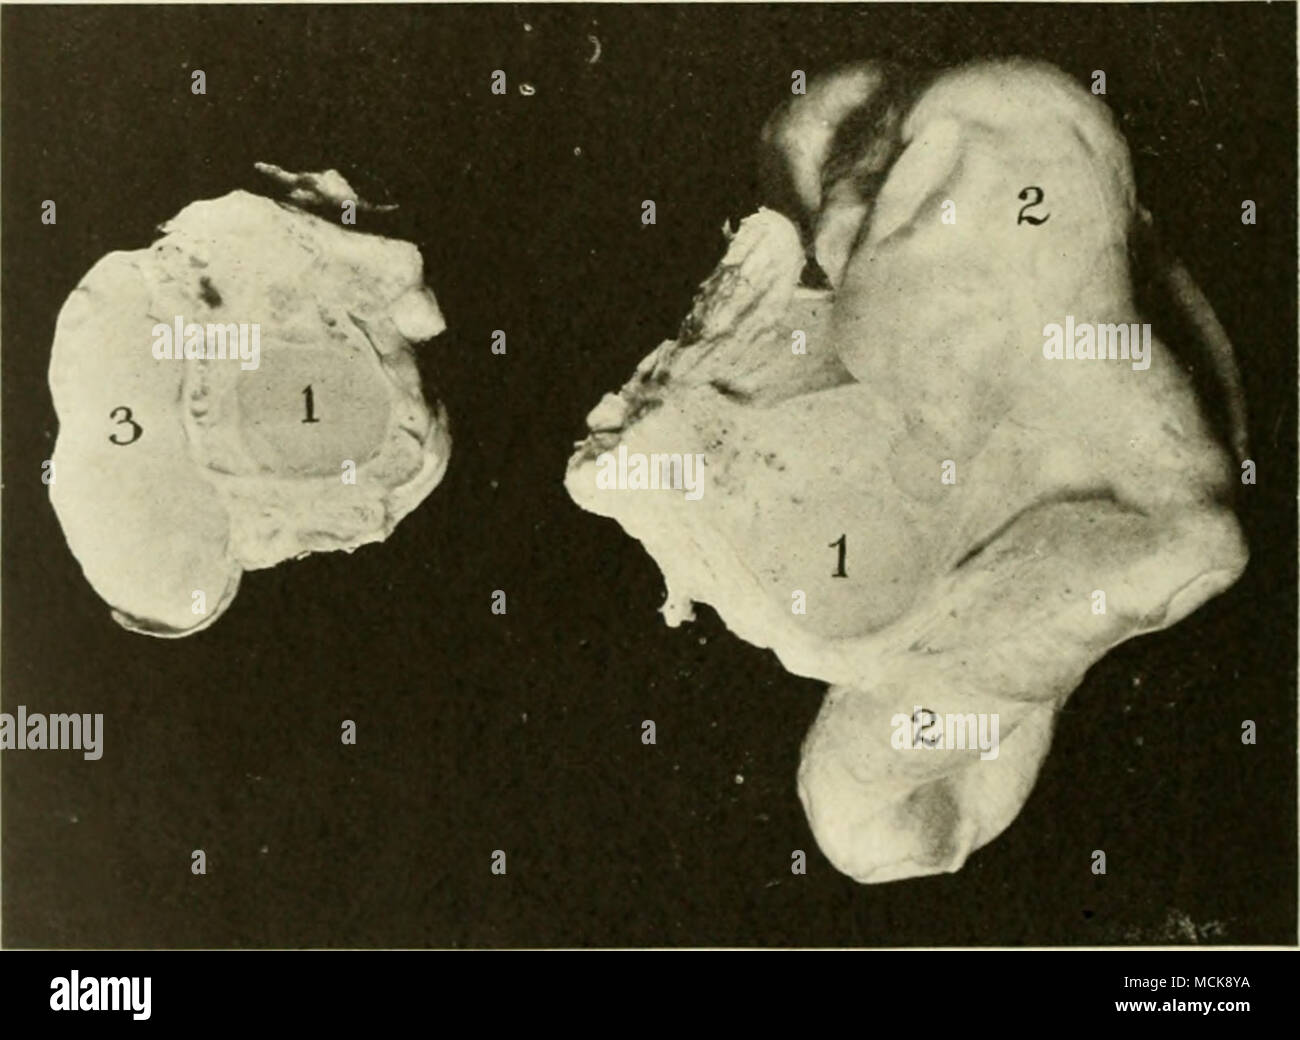 . ] ii, 161—Extreme Bilateral Hydrosalpinx. /, /, Section through cystic, adherent ovaries (cystic defeneration of corpus luteutn); 2, enormously distended oviduct. About % of total length lies underneath the portion shown ; 3, section through the smaller oviduct. absolute sterility of the patient. The disease assumes a va- riety of types. Generally, when hydrosalpinx is established, adhesion of the ovary within the pavilion of the tube has al- ready occurred. The mesosalpinx is also commonly adher- ent to the ovary, as shown in Figs. 154, 155 and 156, so that the cystic oviduct is thrown into - Stock Image